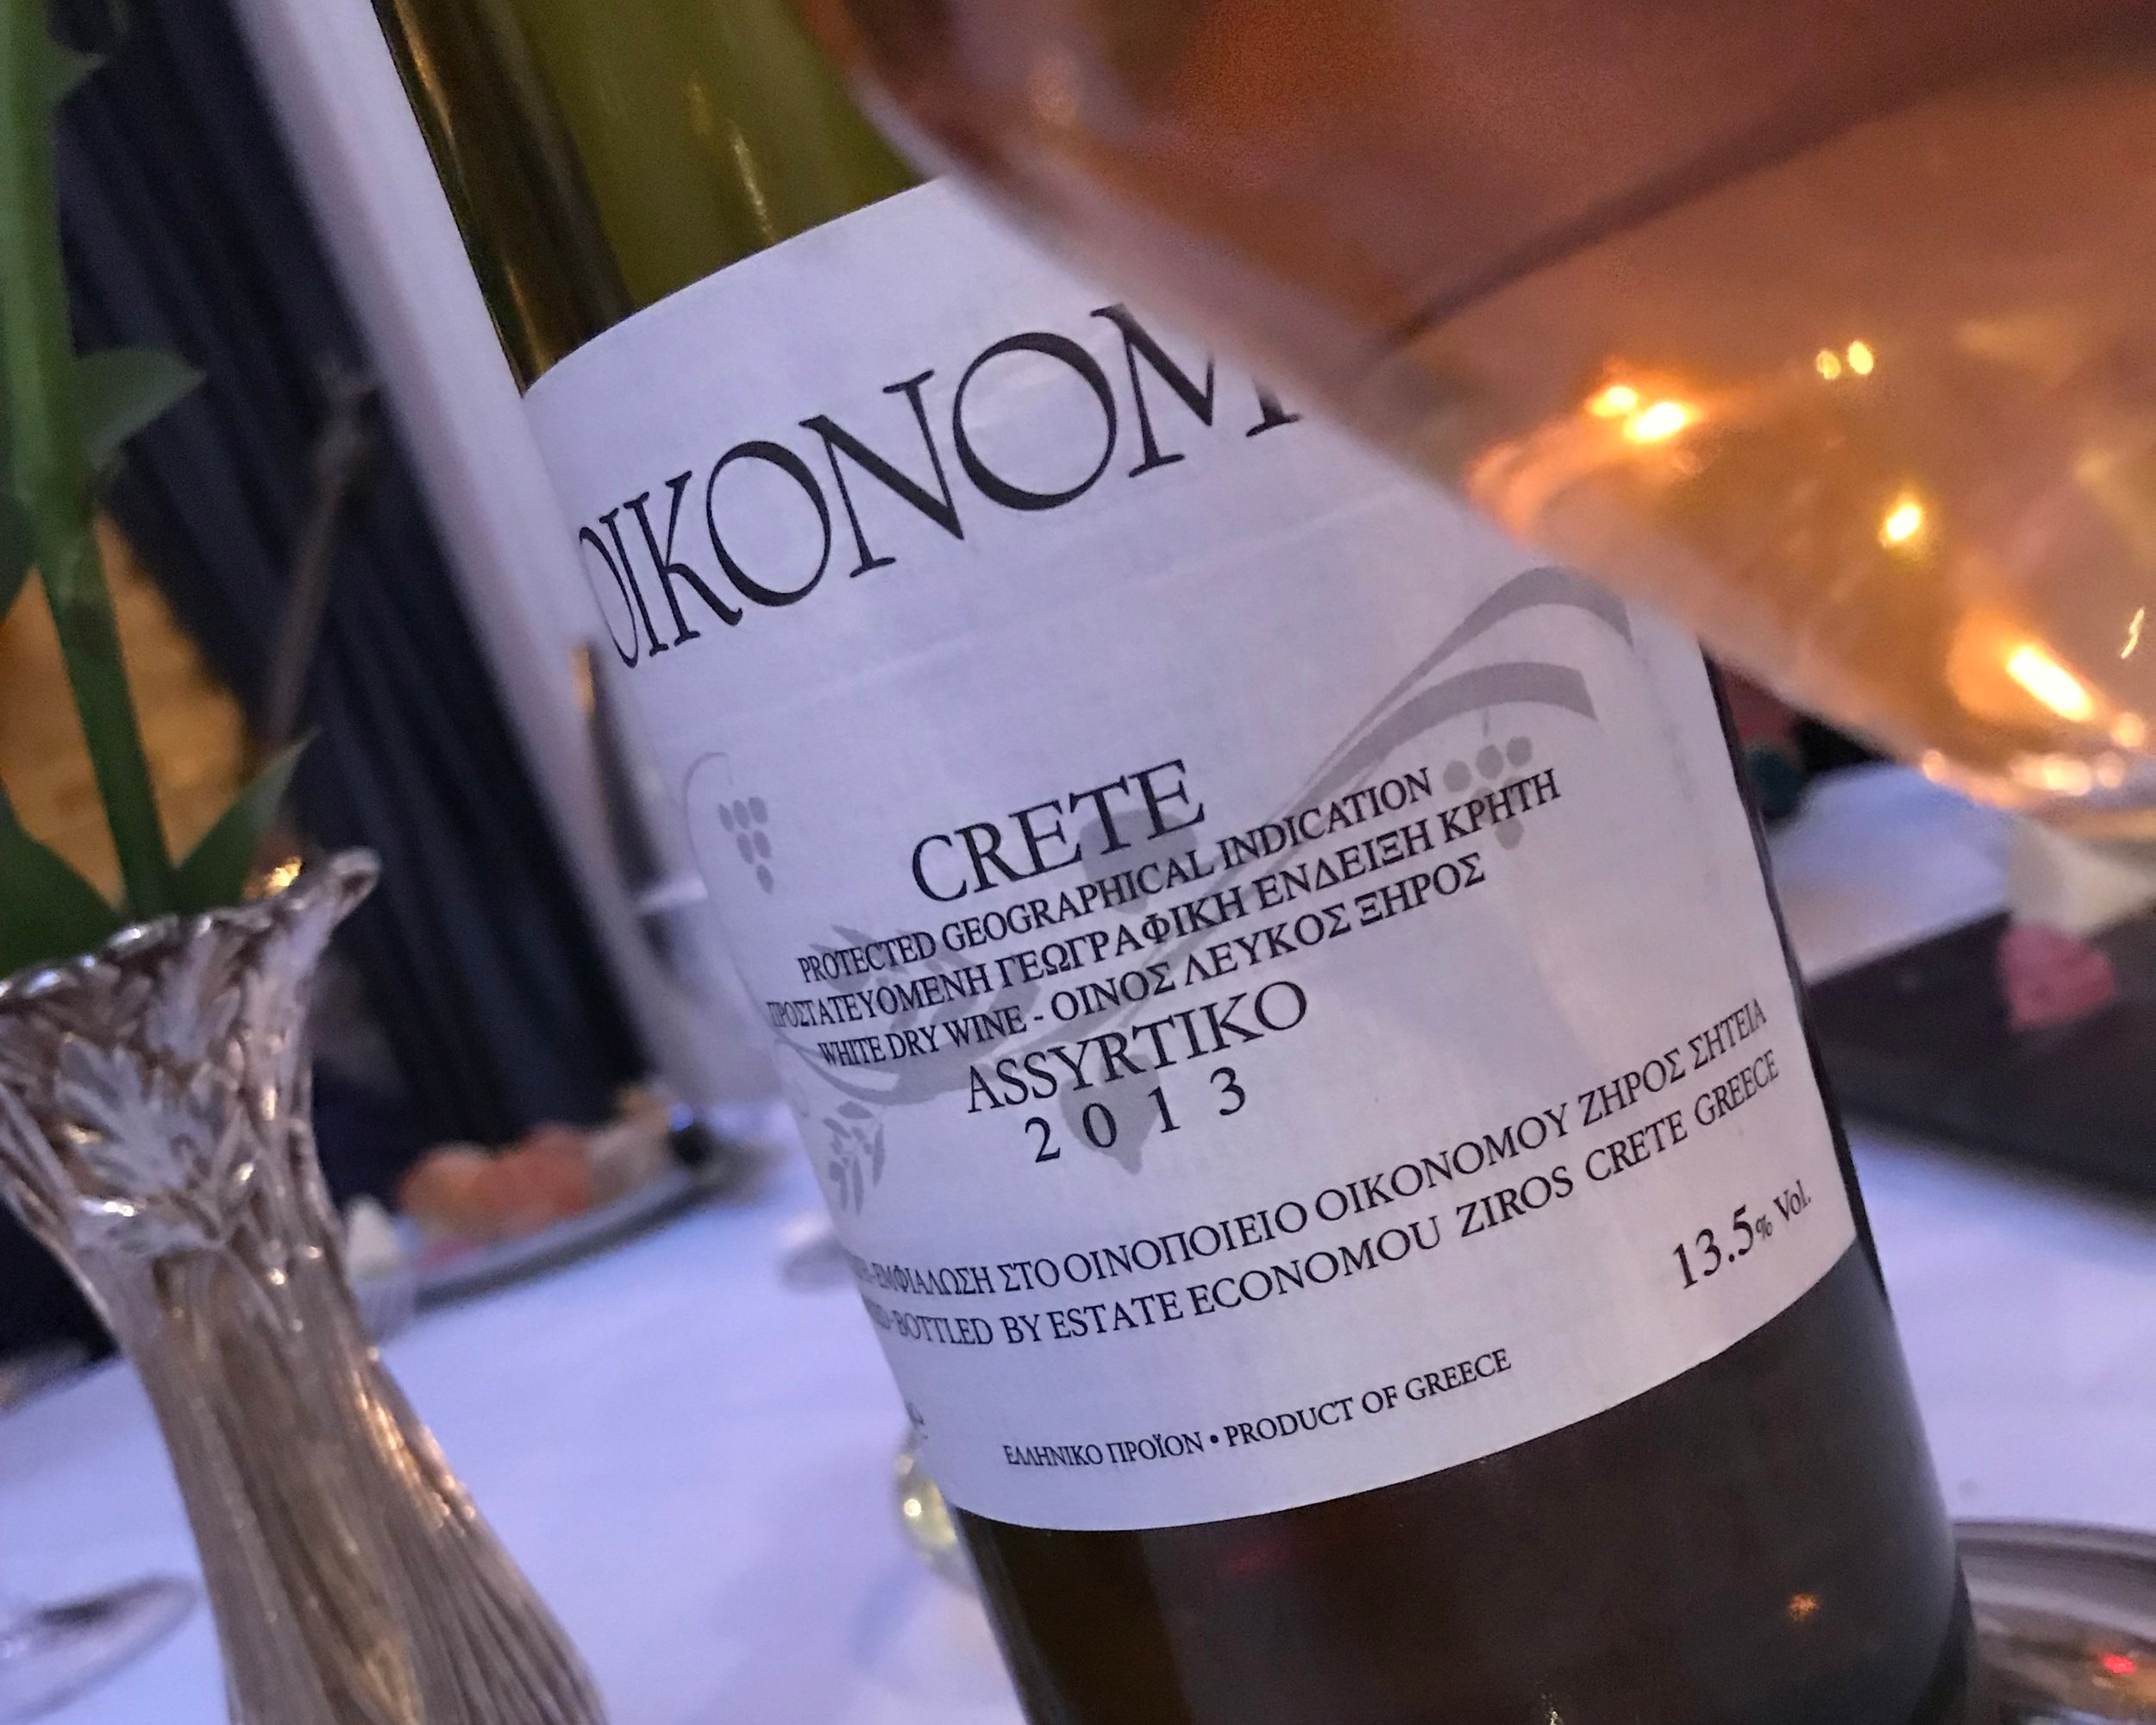 Skin-contact assyrtiko from crete - An amber/orange/skin-contact wine from the assyrtiko grape native to Greece.